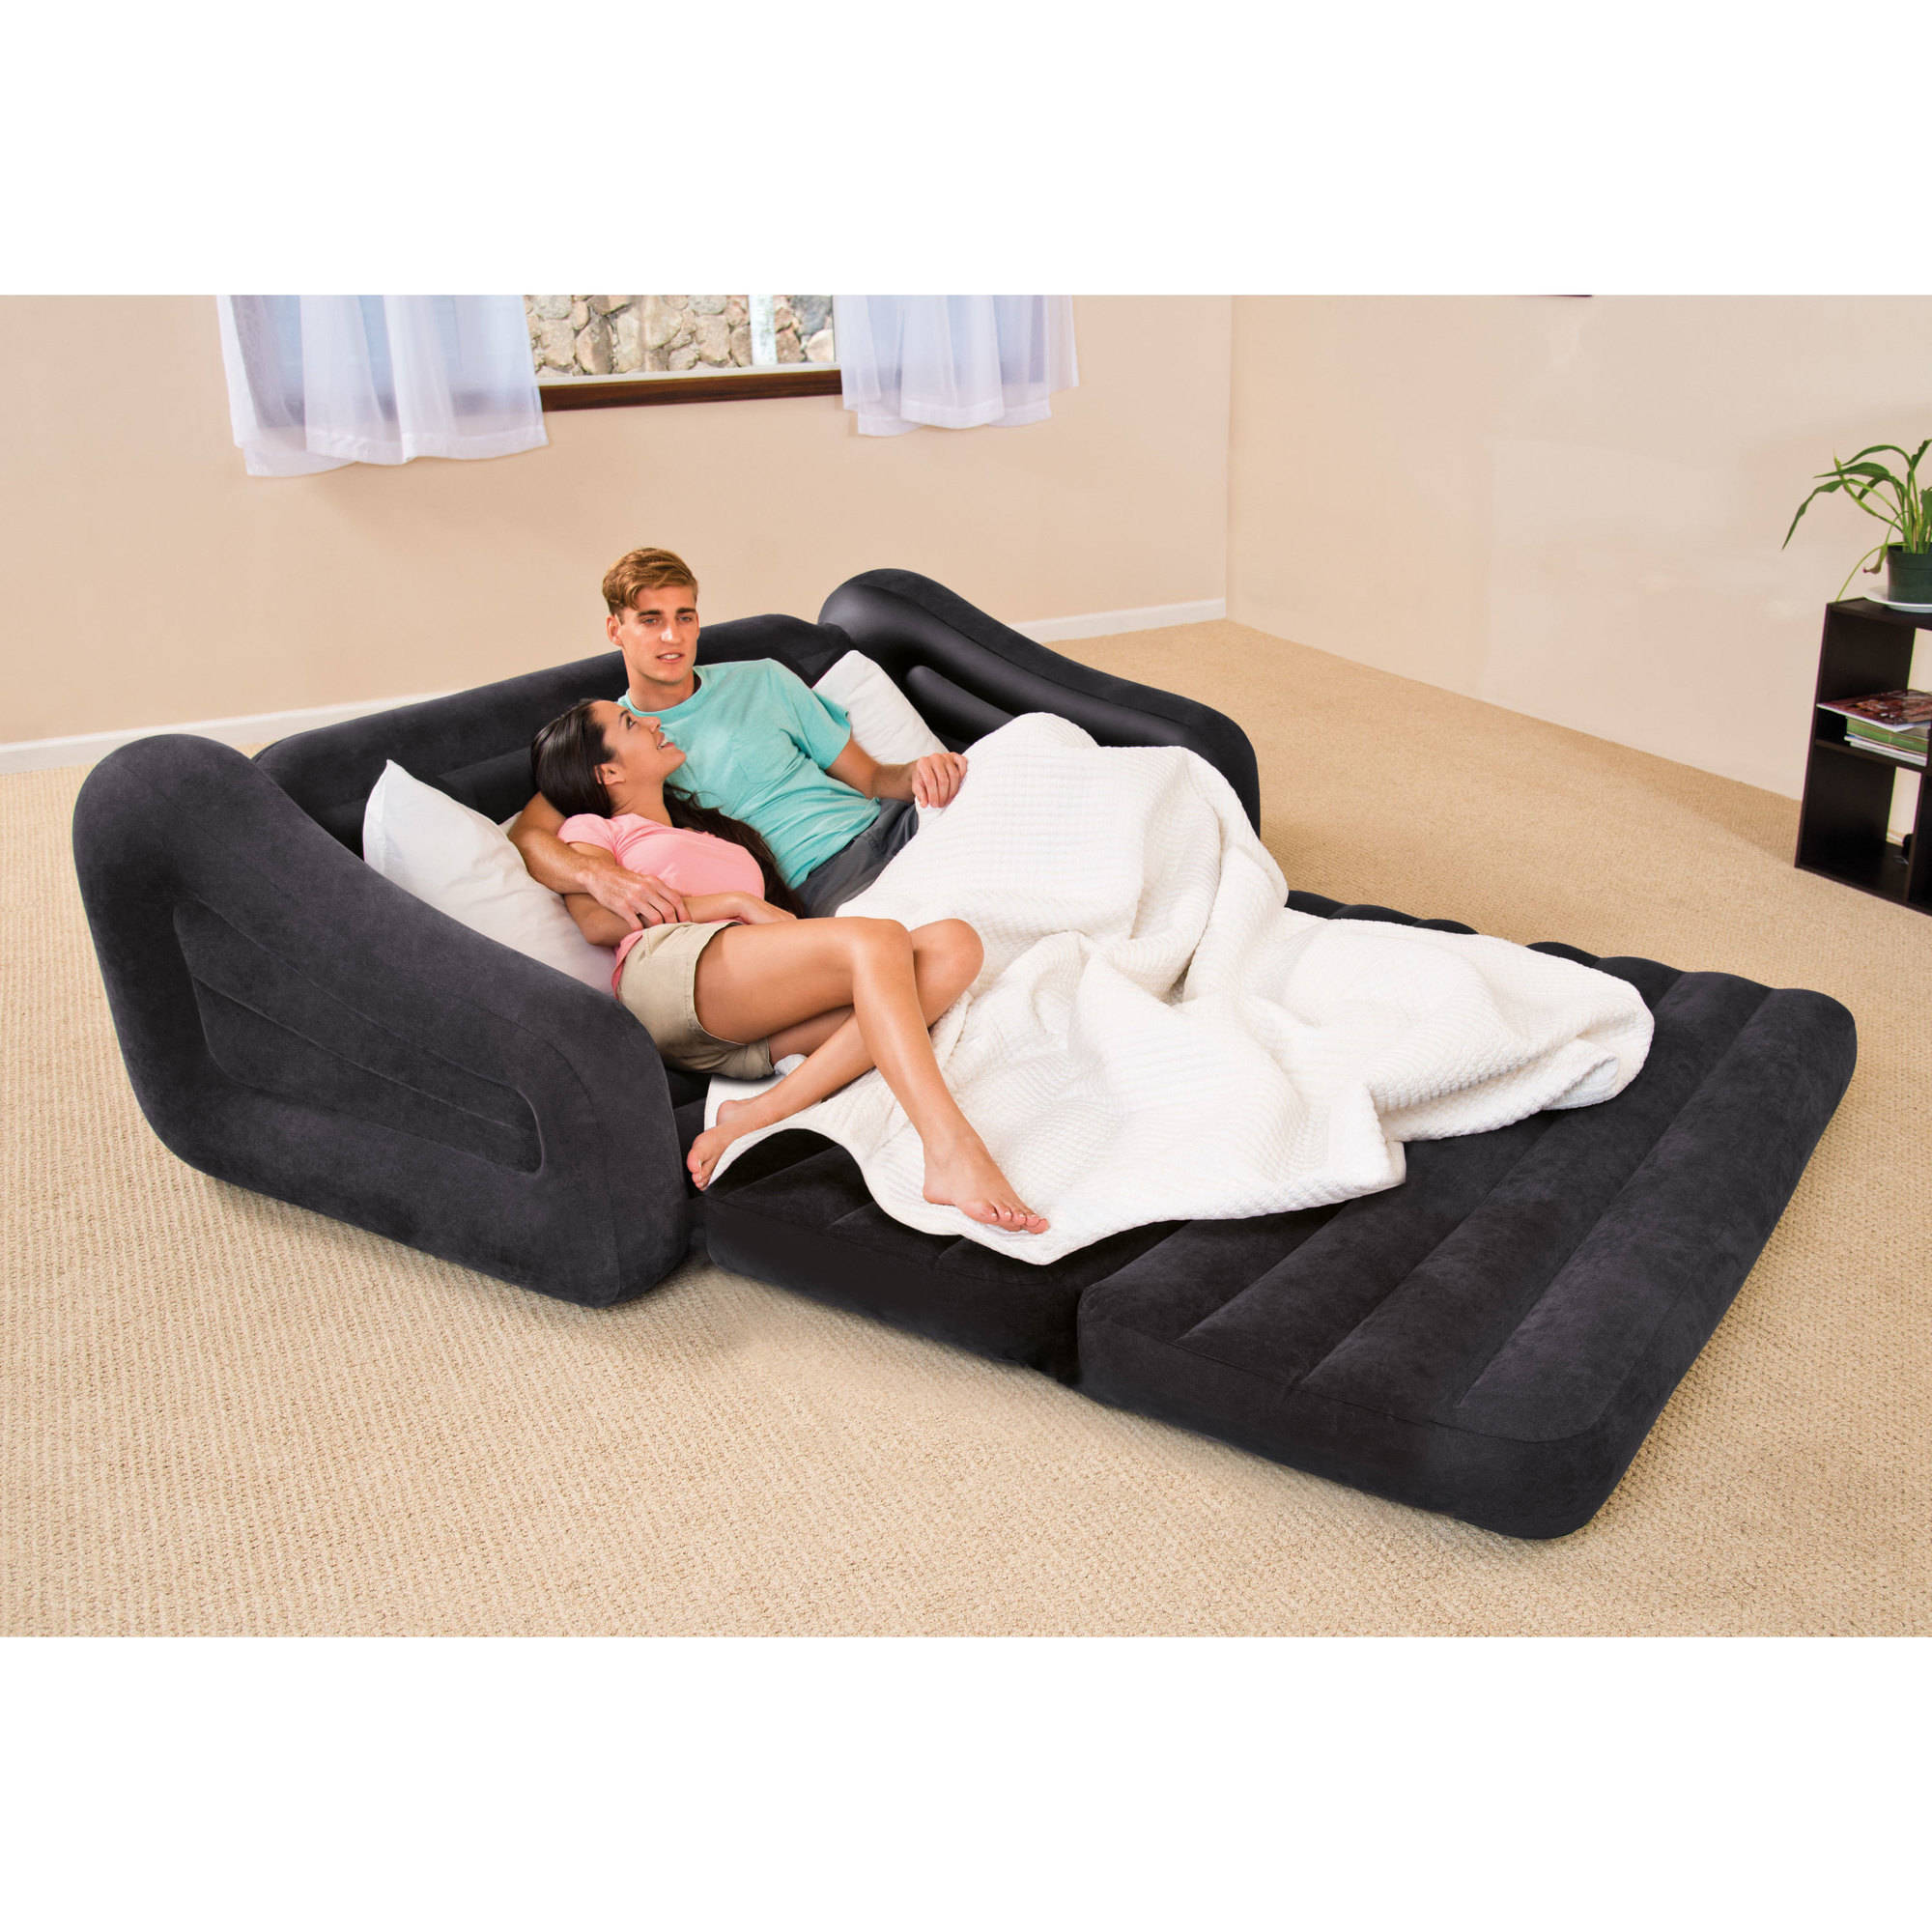 Inflatable Pull Out Air Sofa Bed Mattress Sleeper Blow Up  : 298c7377 ab3e 4a65 a41f 25fed678e9aa1ec25946fa2628afc93f635fd1ed37bfb from www.ebay.com size 2000 x 2000 jpeg 338kB